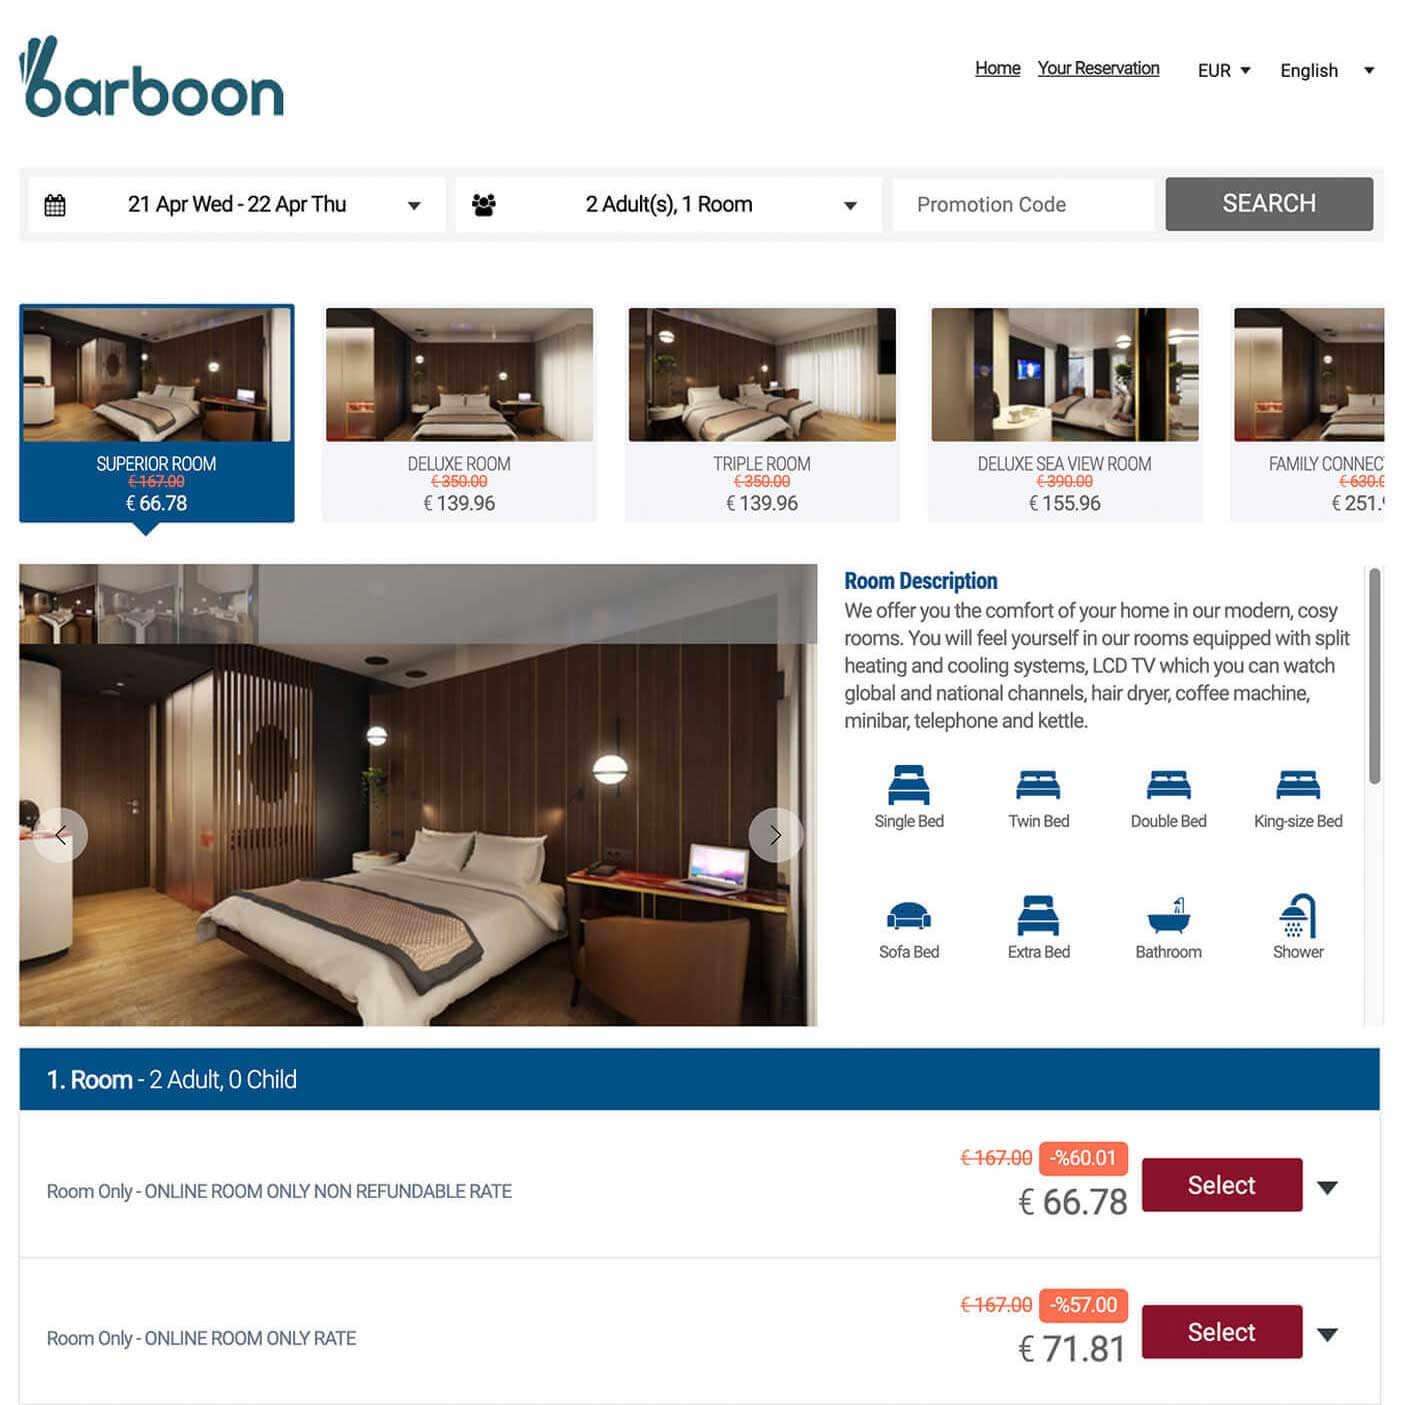 barboon-home-banner-eng